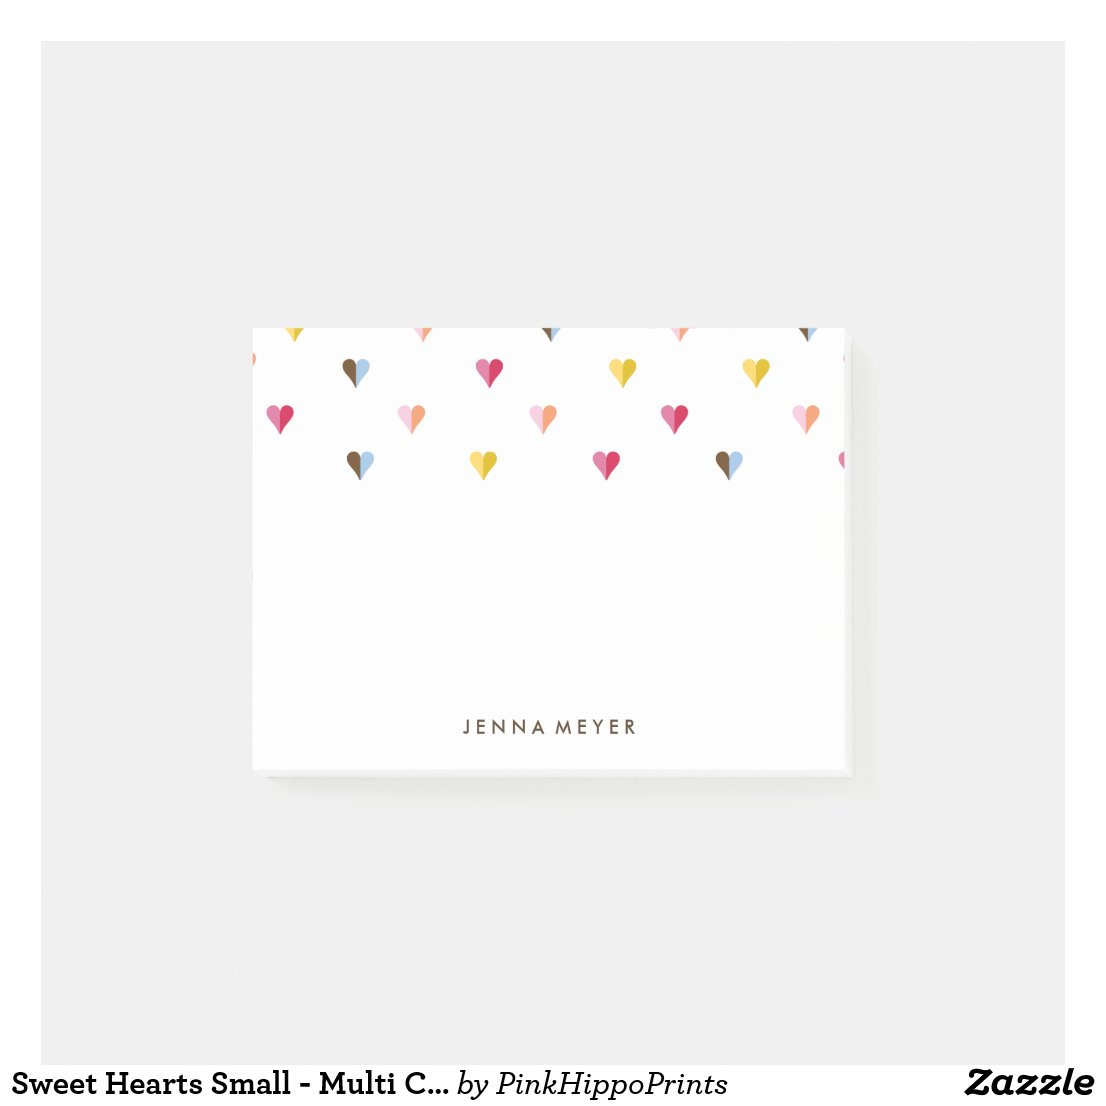 Sweet Hearts Small - Multi Coloured